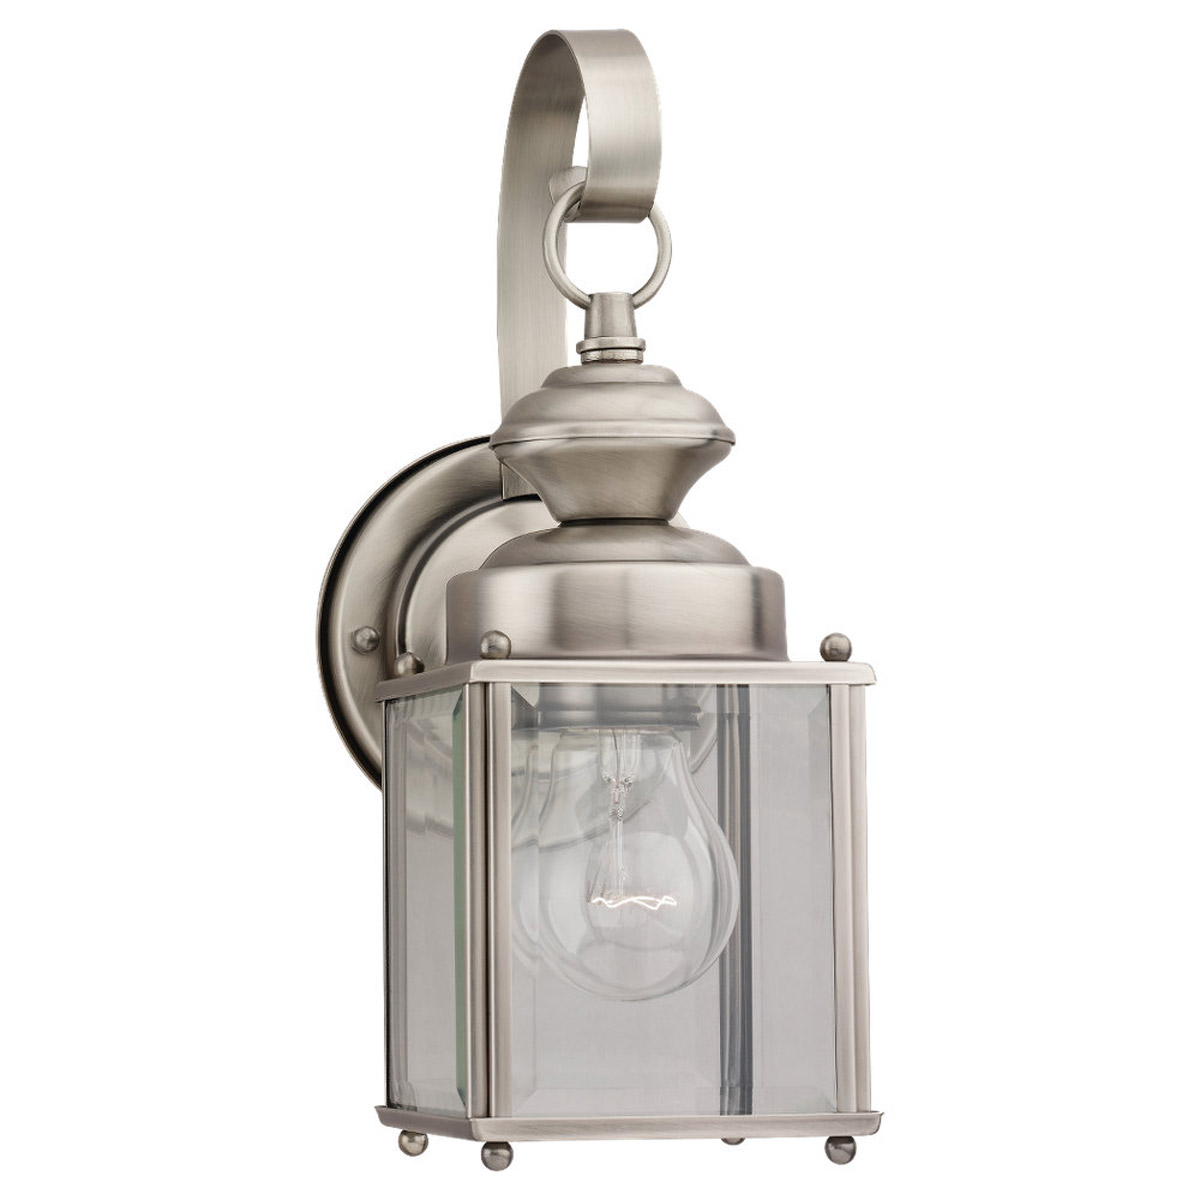 Sea Gull Lighting Jamestowne 1 Light Outdoor Wall Lantern in Antique Brushed Nickel 8456-965